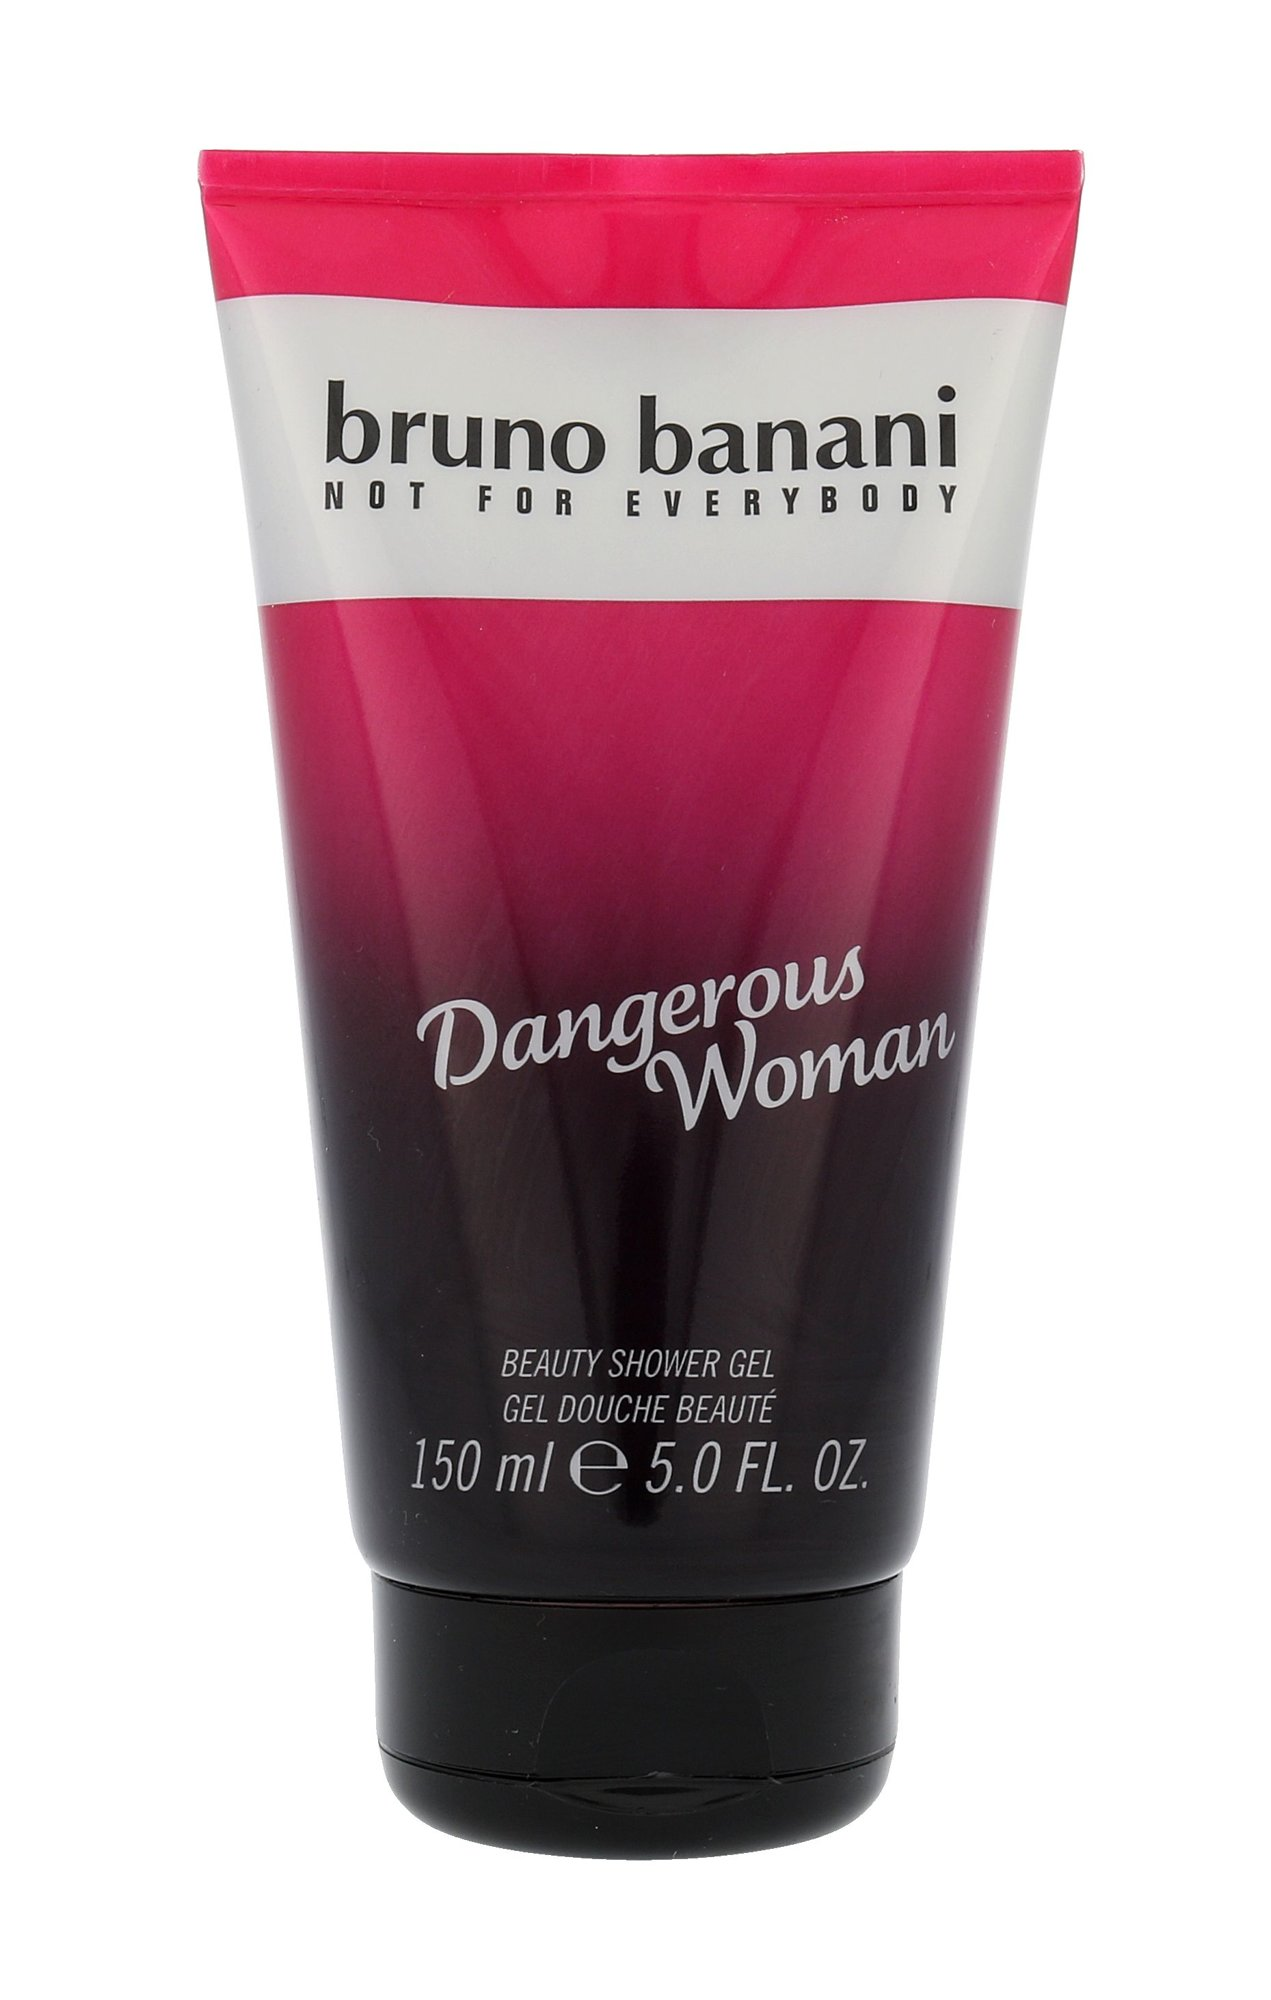 Bruno Banani Dangerous Woman Shower gel 150ml